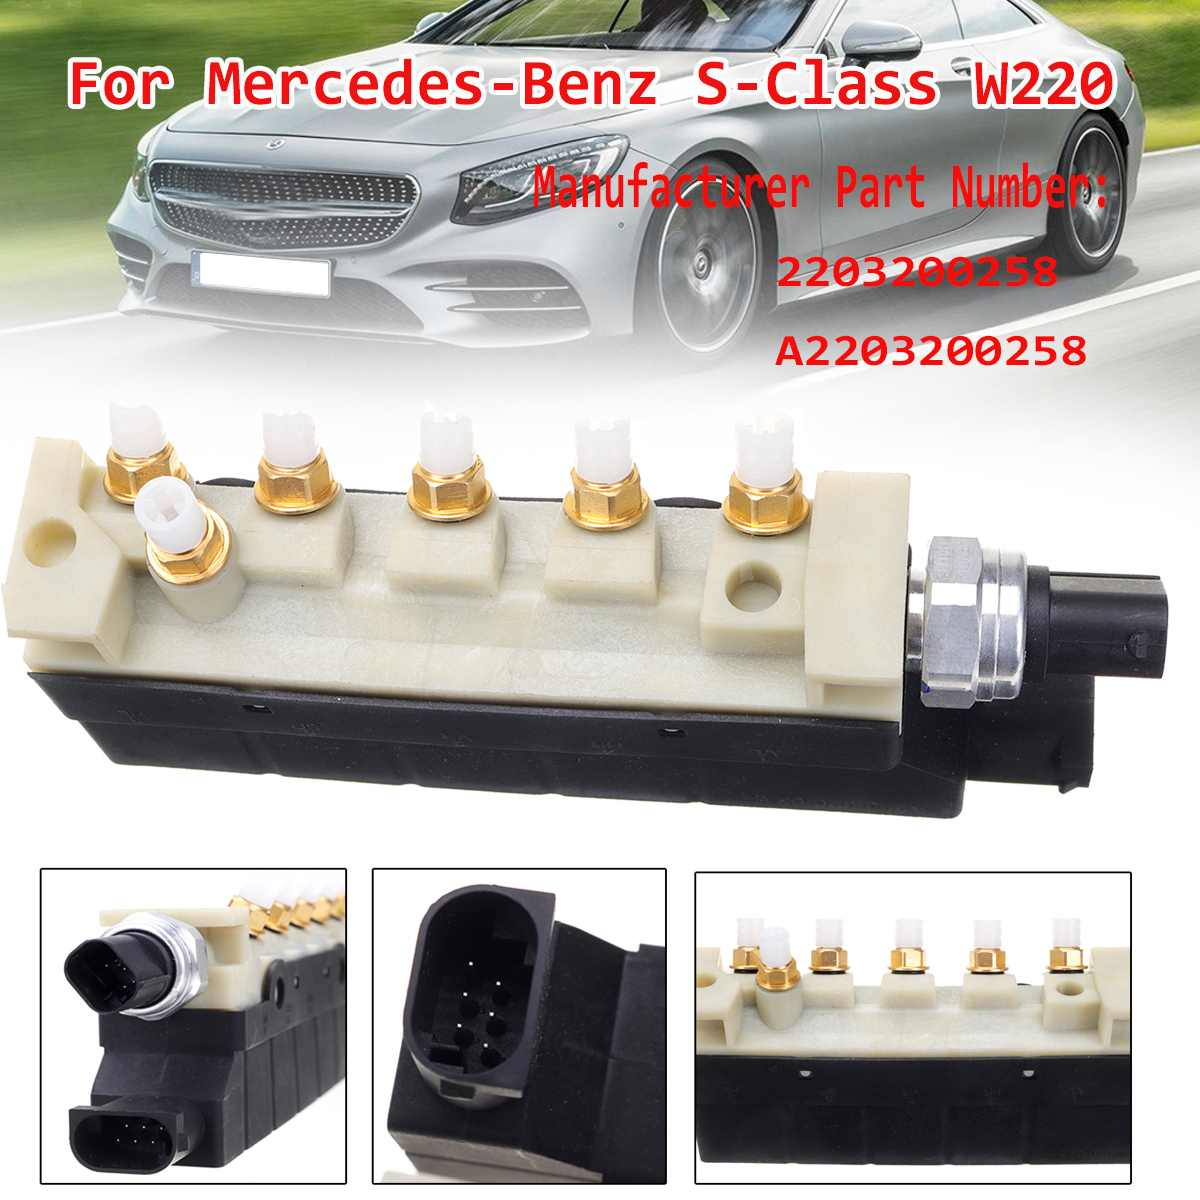 Air Suspension Compressor Valve Block For Mercedes <font><b>Benz</b></font> S Class <font><b>W220</b></font> 2203200258 S350 S430 <font><b>S500</b></font> S600 S55 S65 for AMG 2000-2006 image